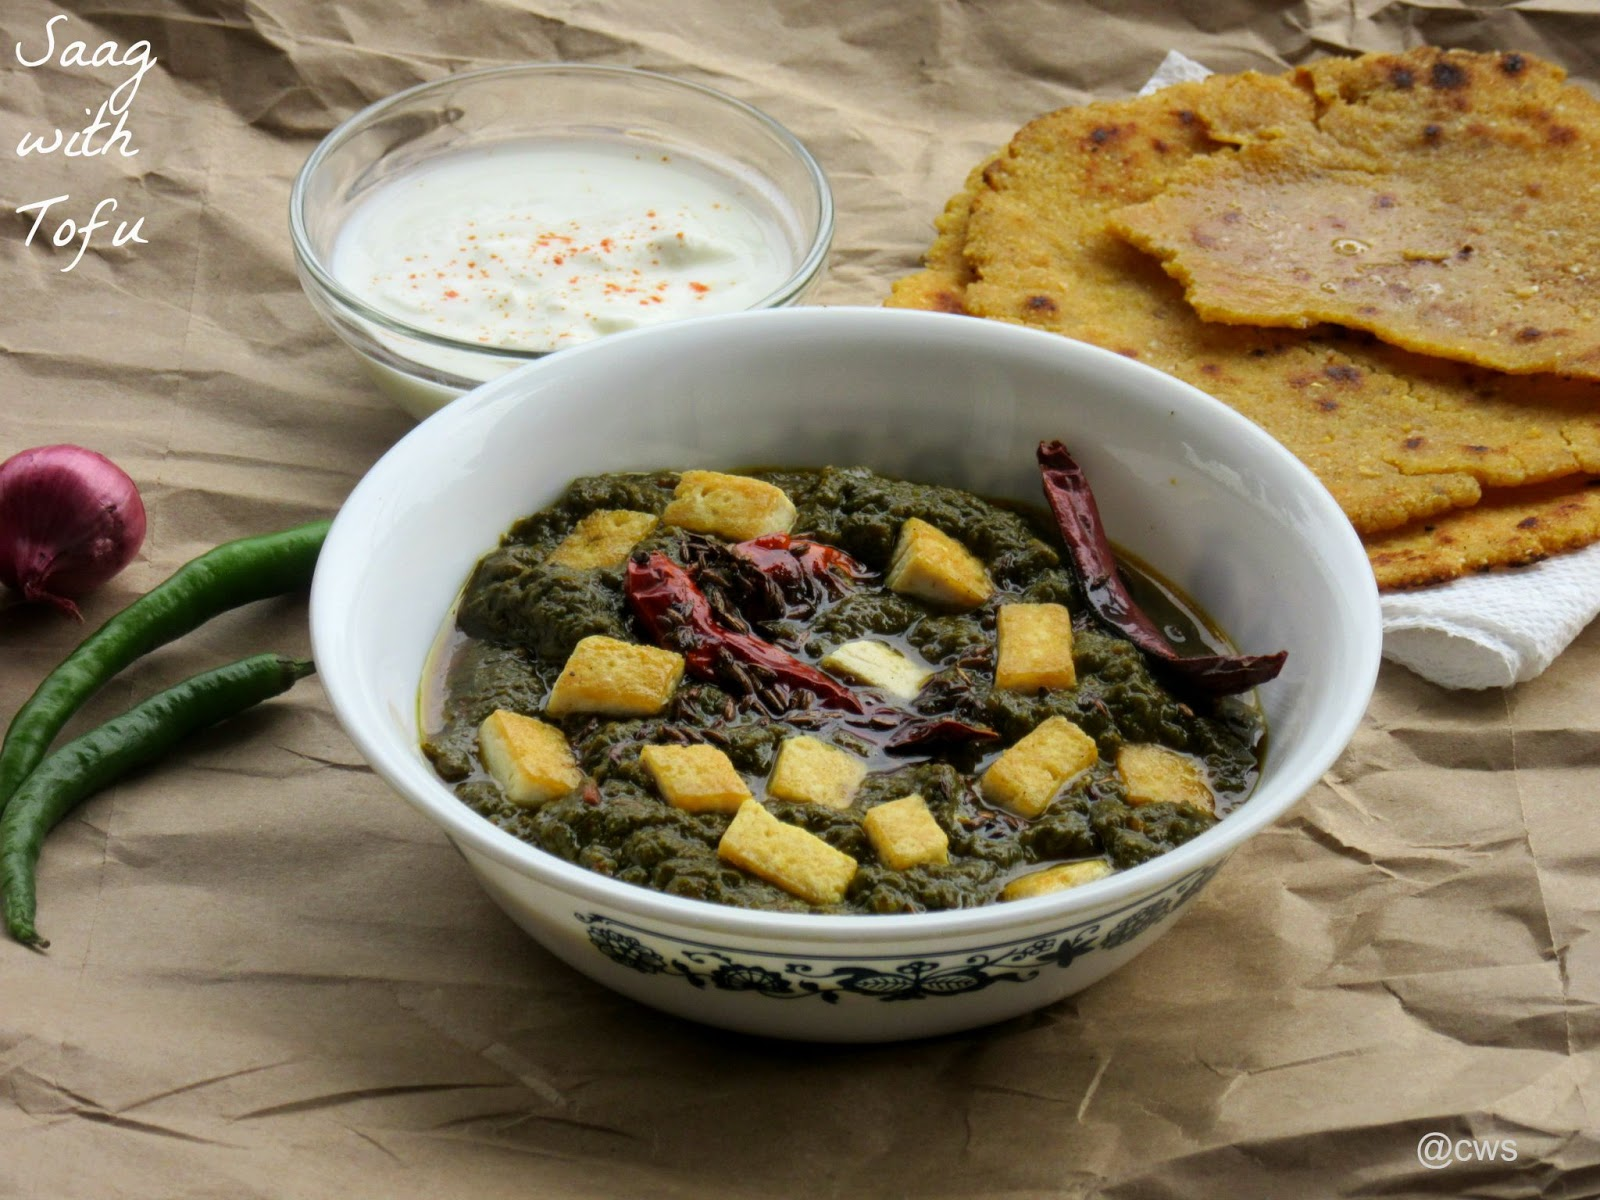 Saag with tofu vegan saag cookingwithsapana when we were in india in winters i was making the sarson saag twice a week but after moving in ireland and now in us its been almost two years since we forumfinder Choice Image